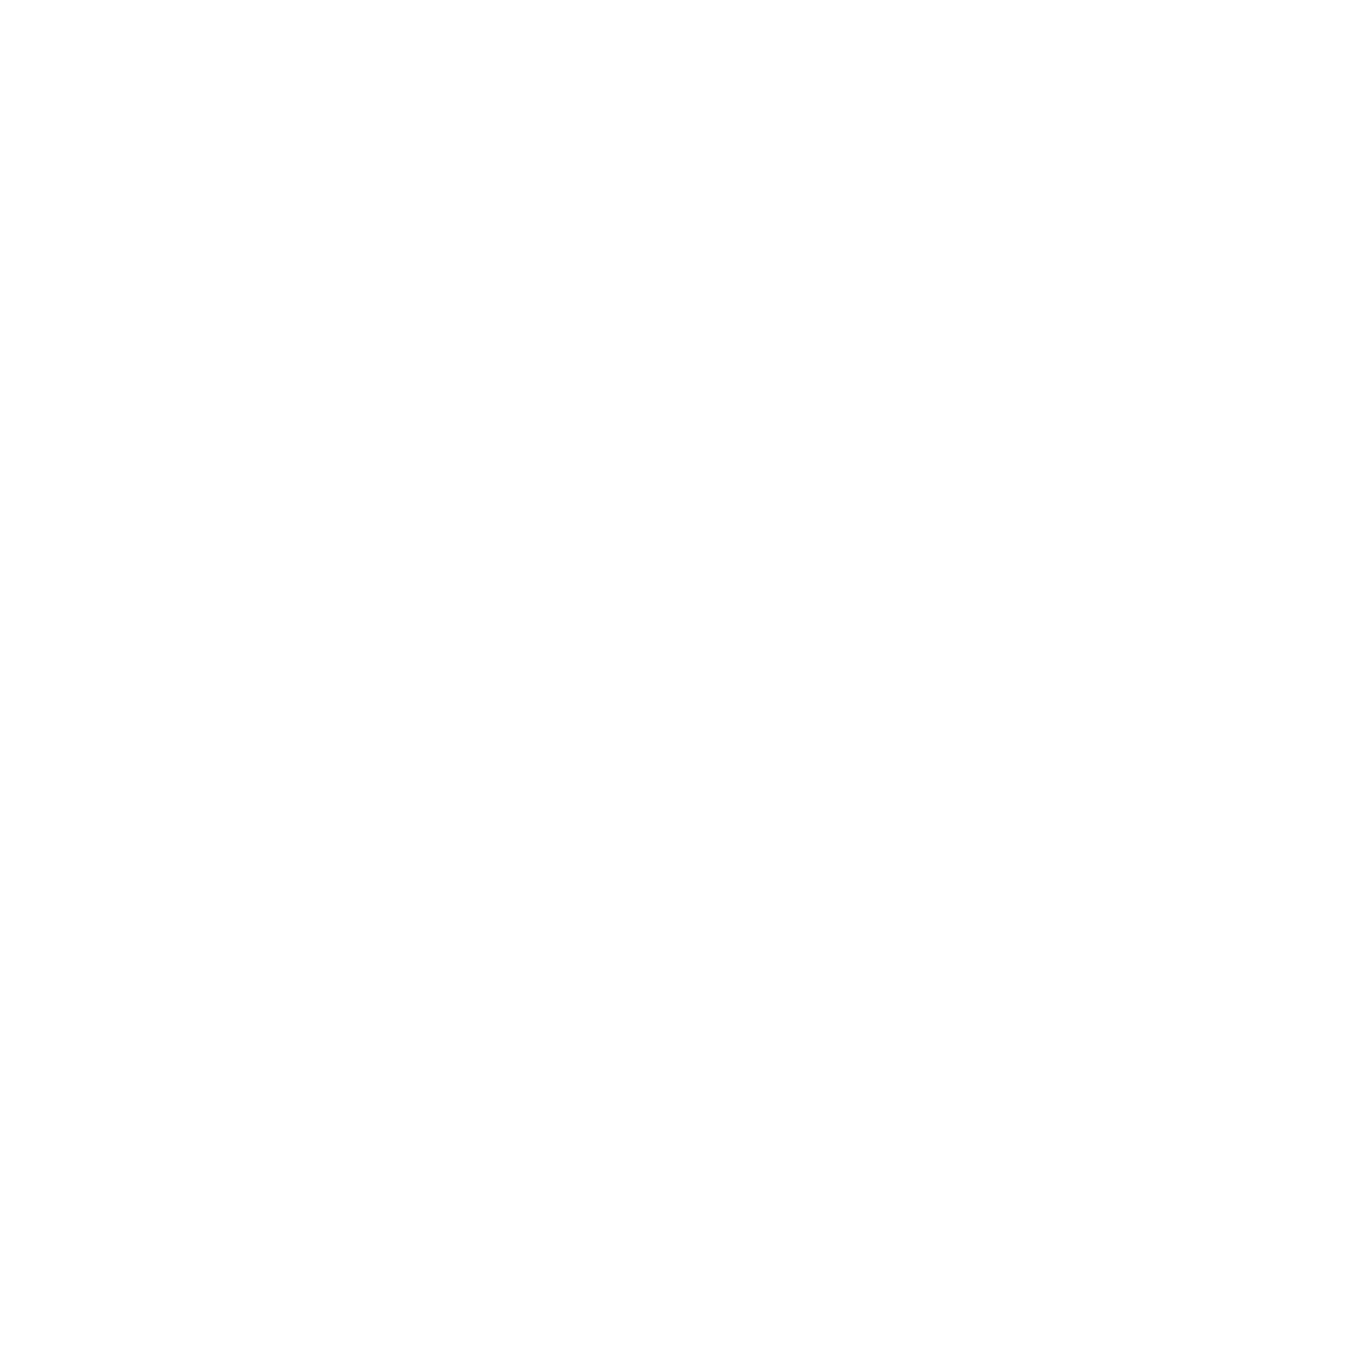 Make Do and Mend logo